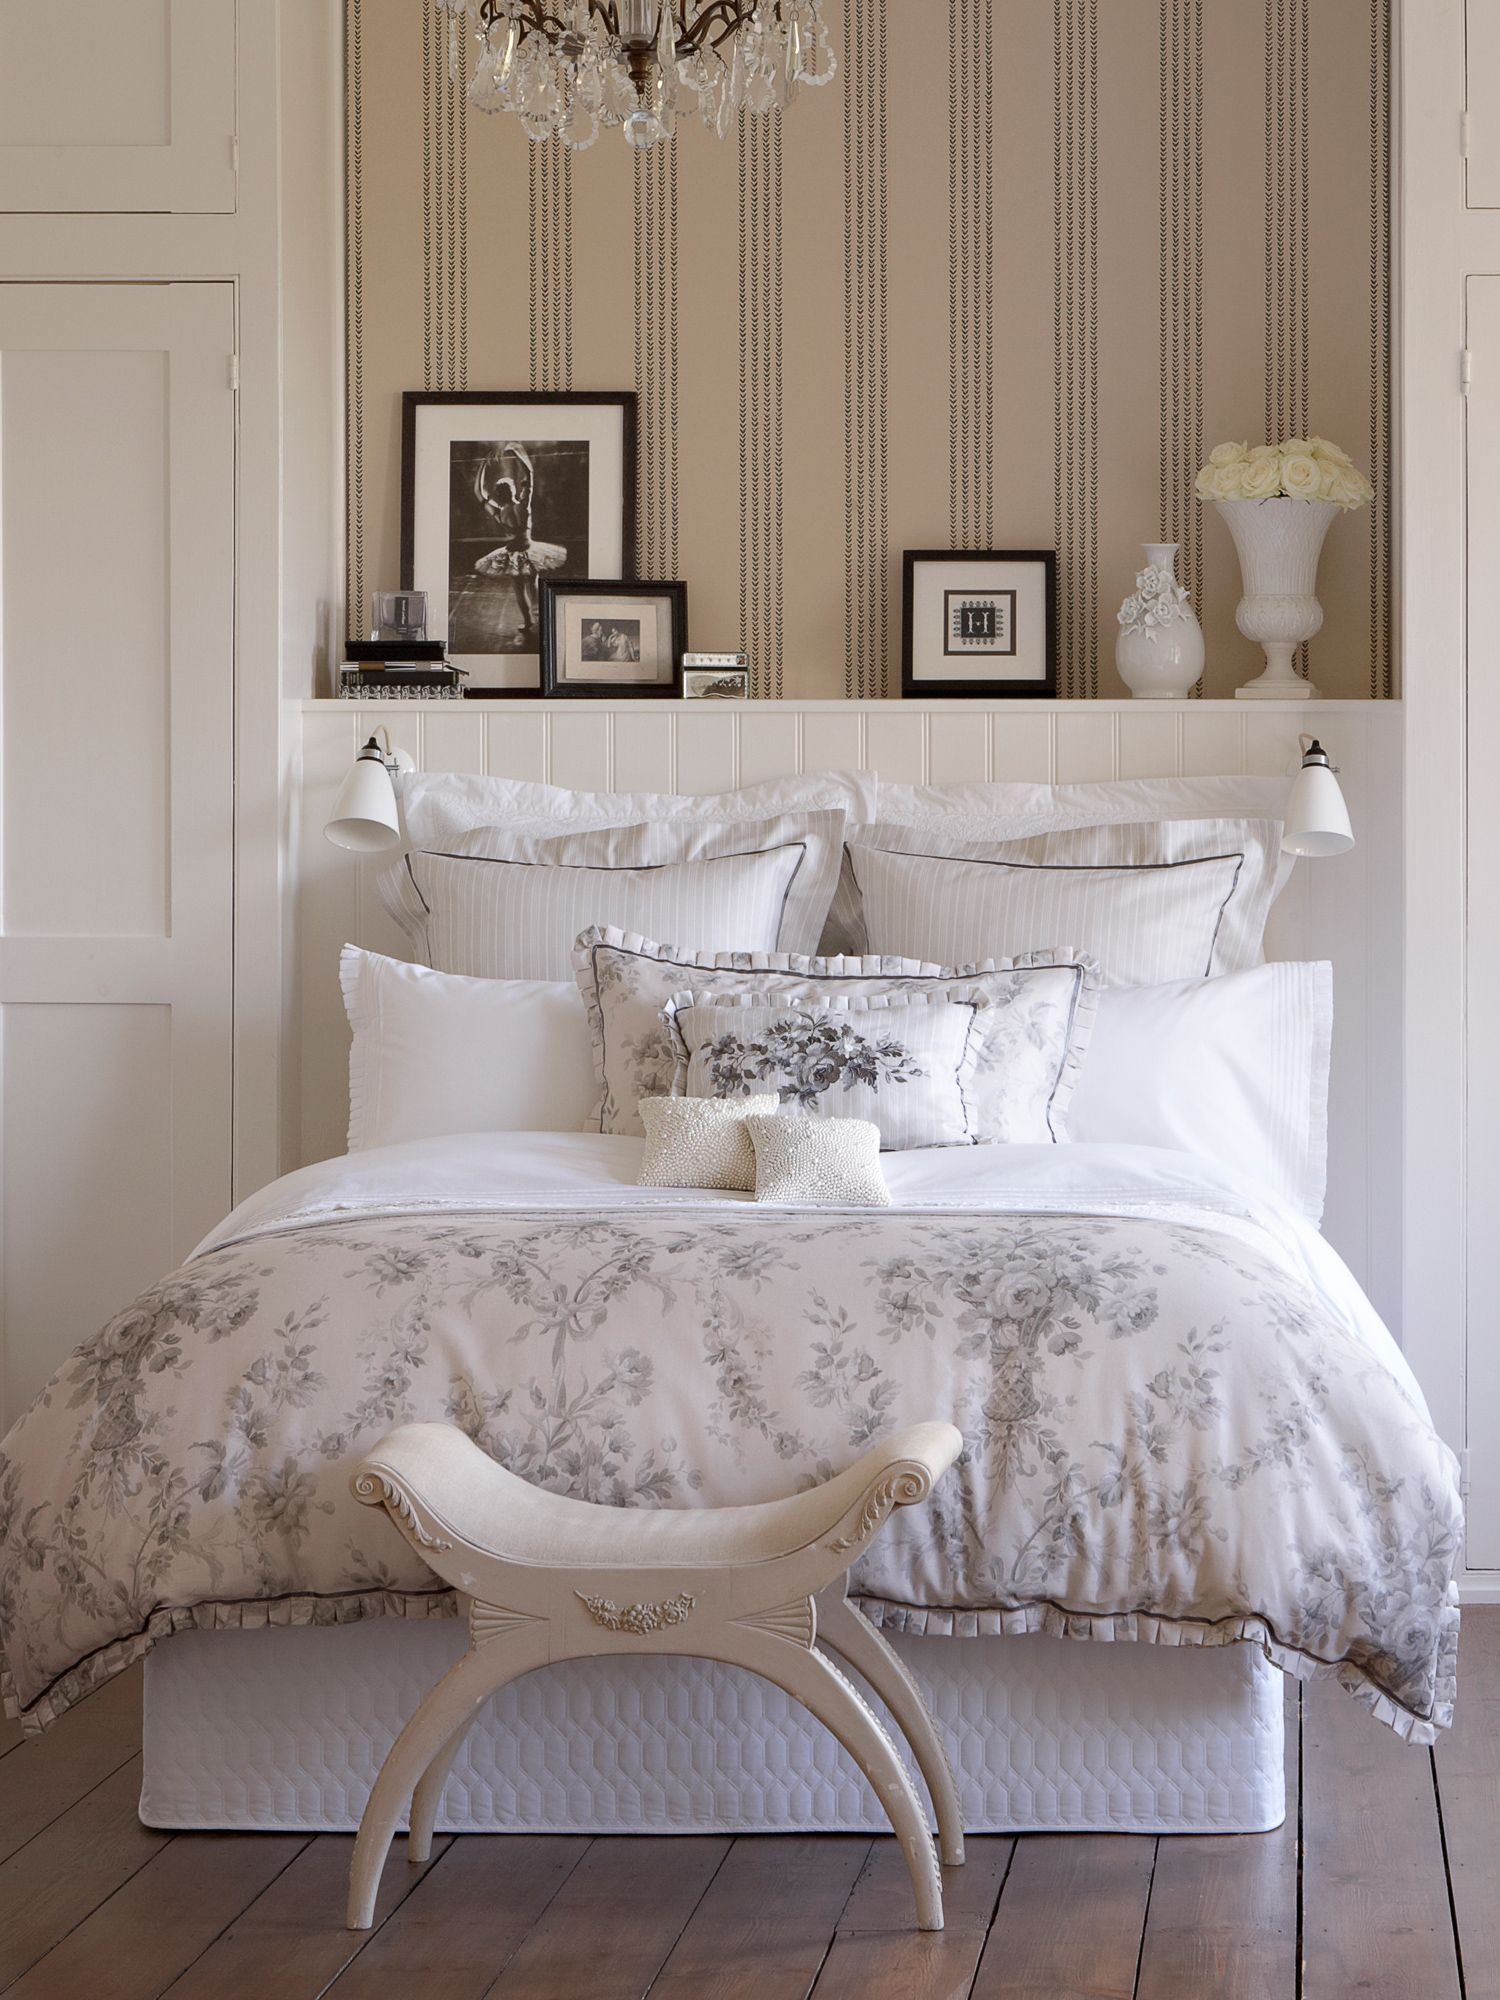 Toile bed linen in linen